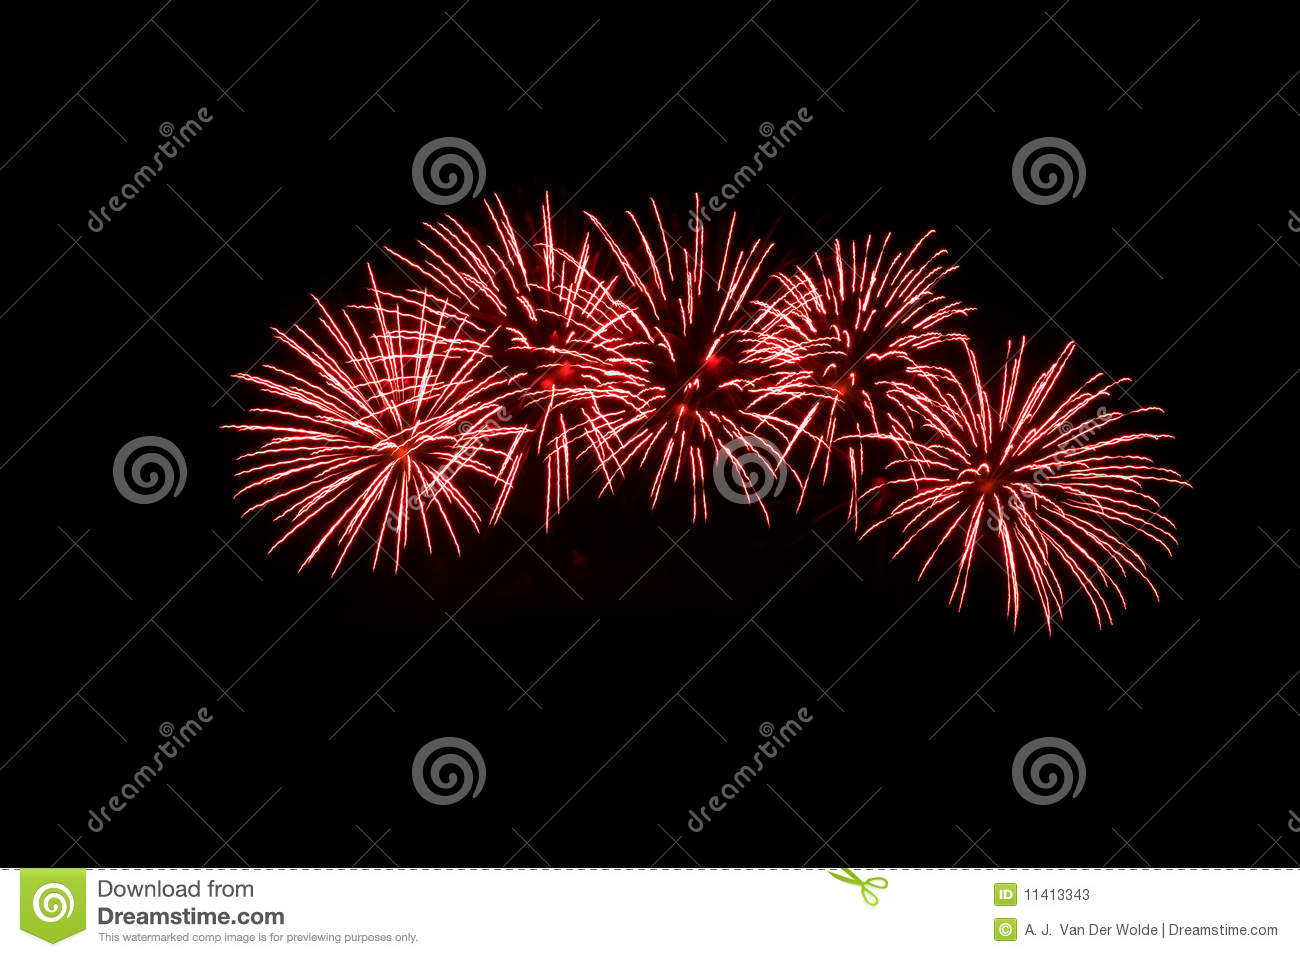 Red Fireworks Free Stock Photo: Red Fireworks Stock Photos